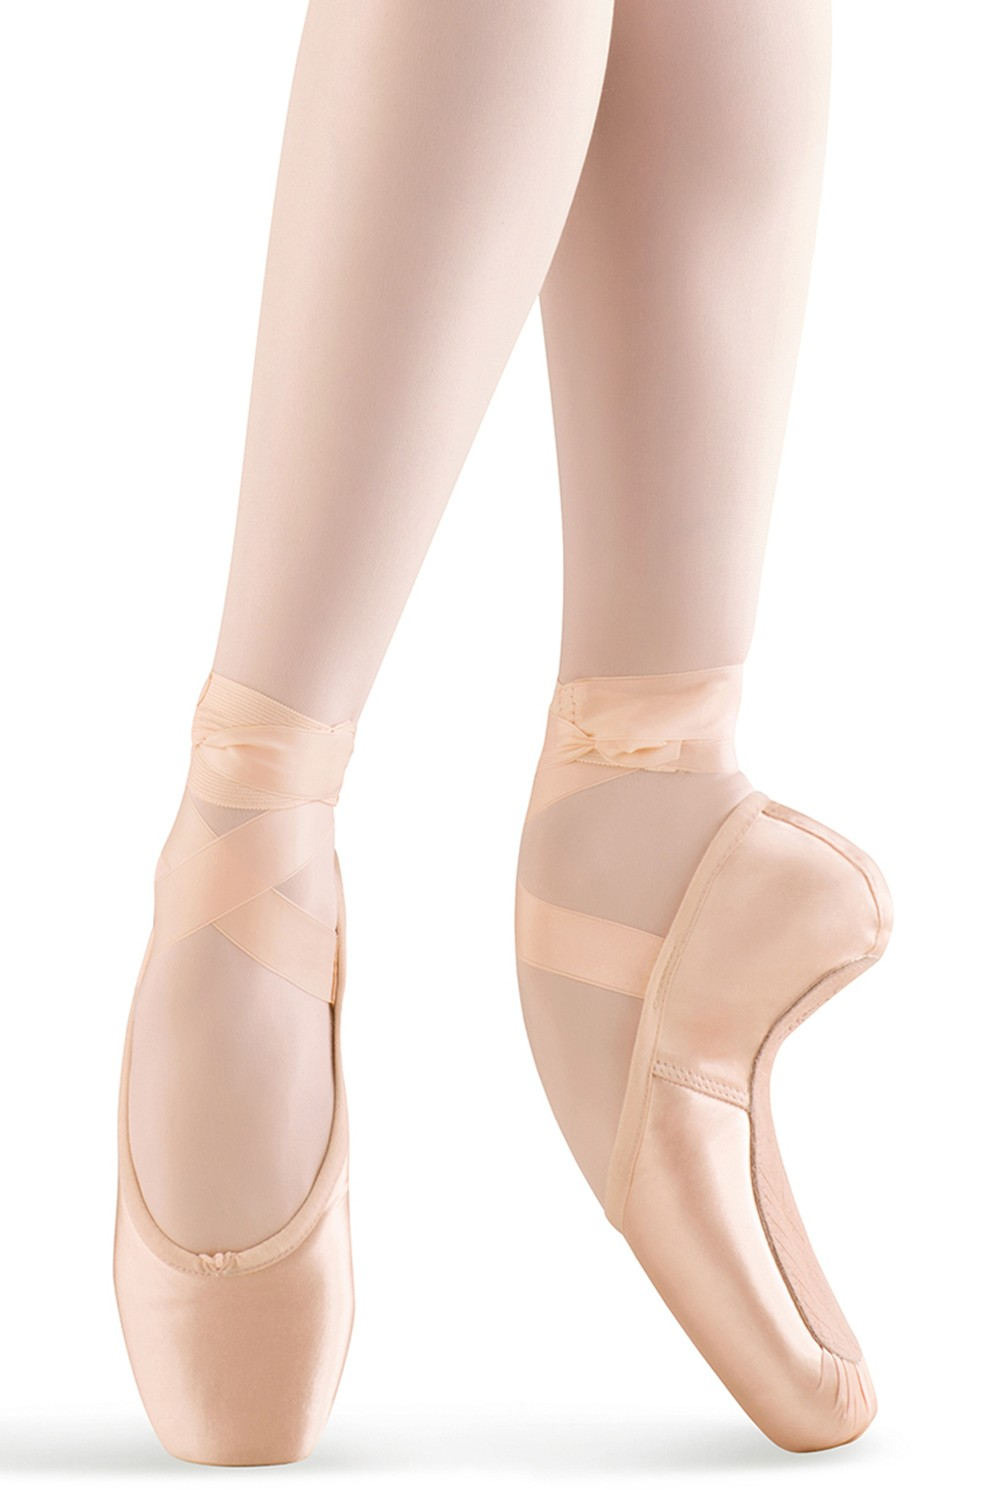 Pointe Shoes Immagini